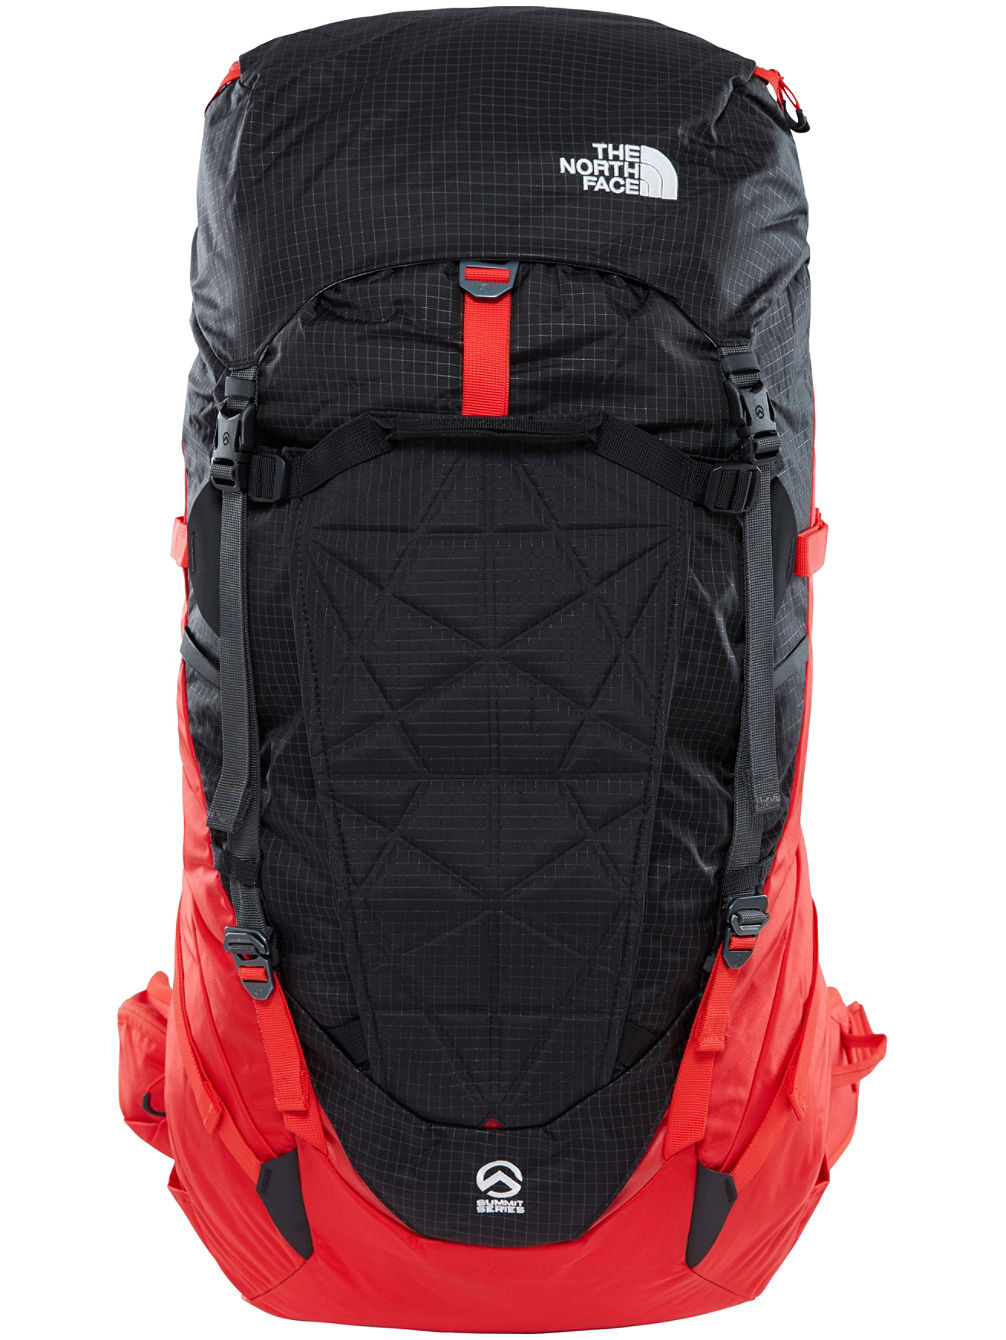 2a509a693c45e Buy THE NORTH FACE Cobra 60L Backpack online at Blue Tomato